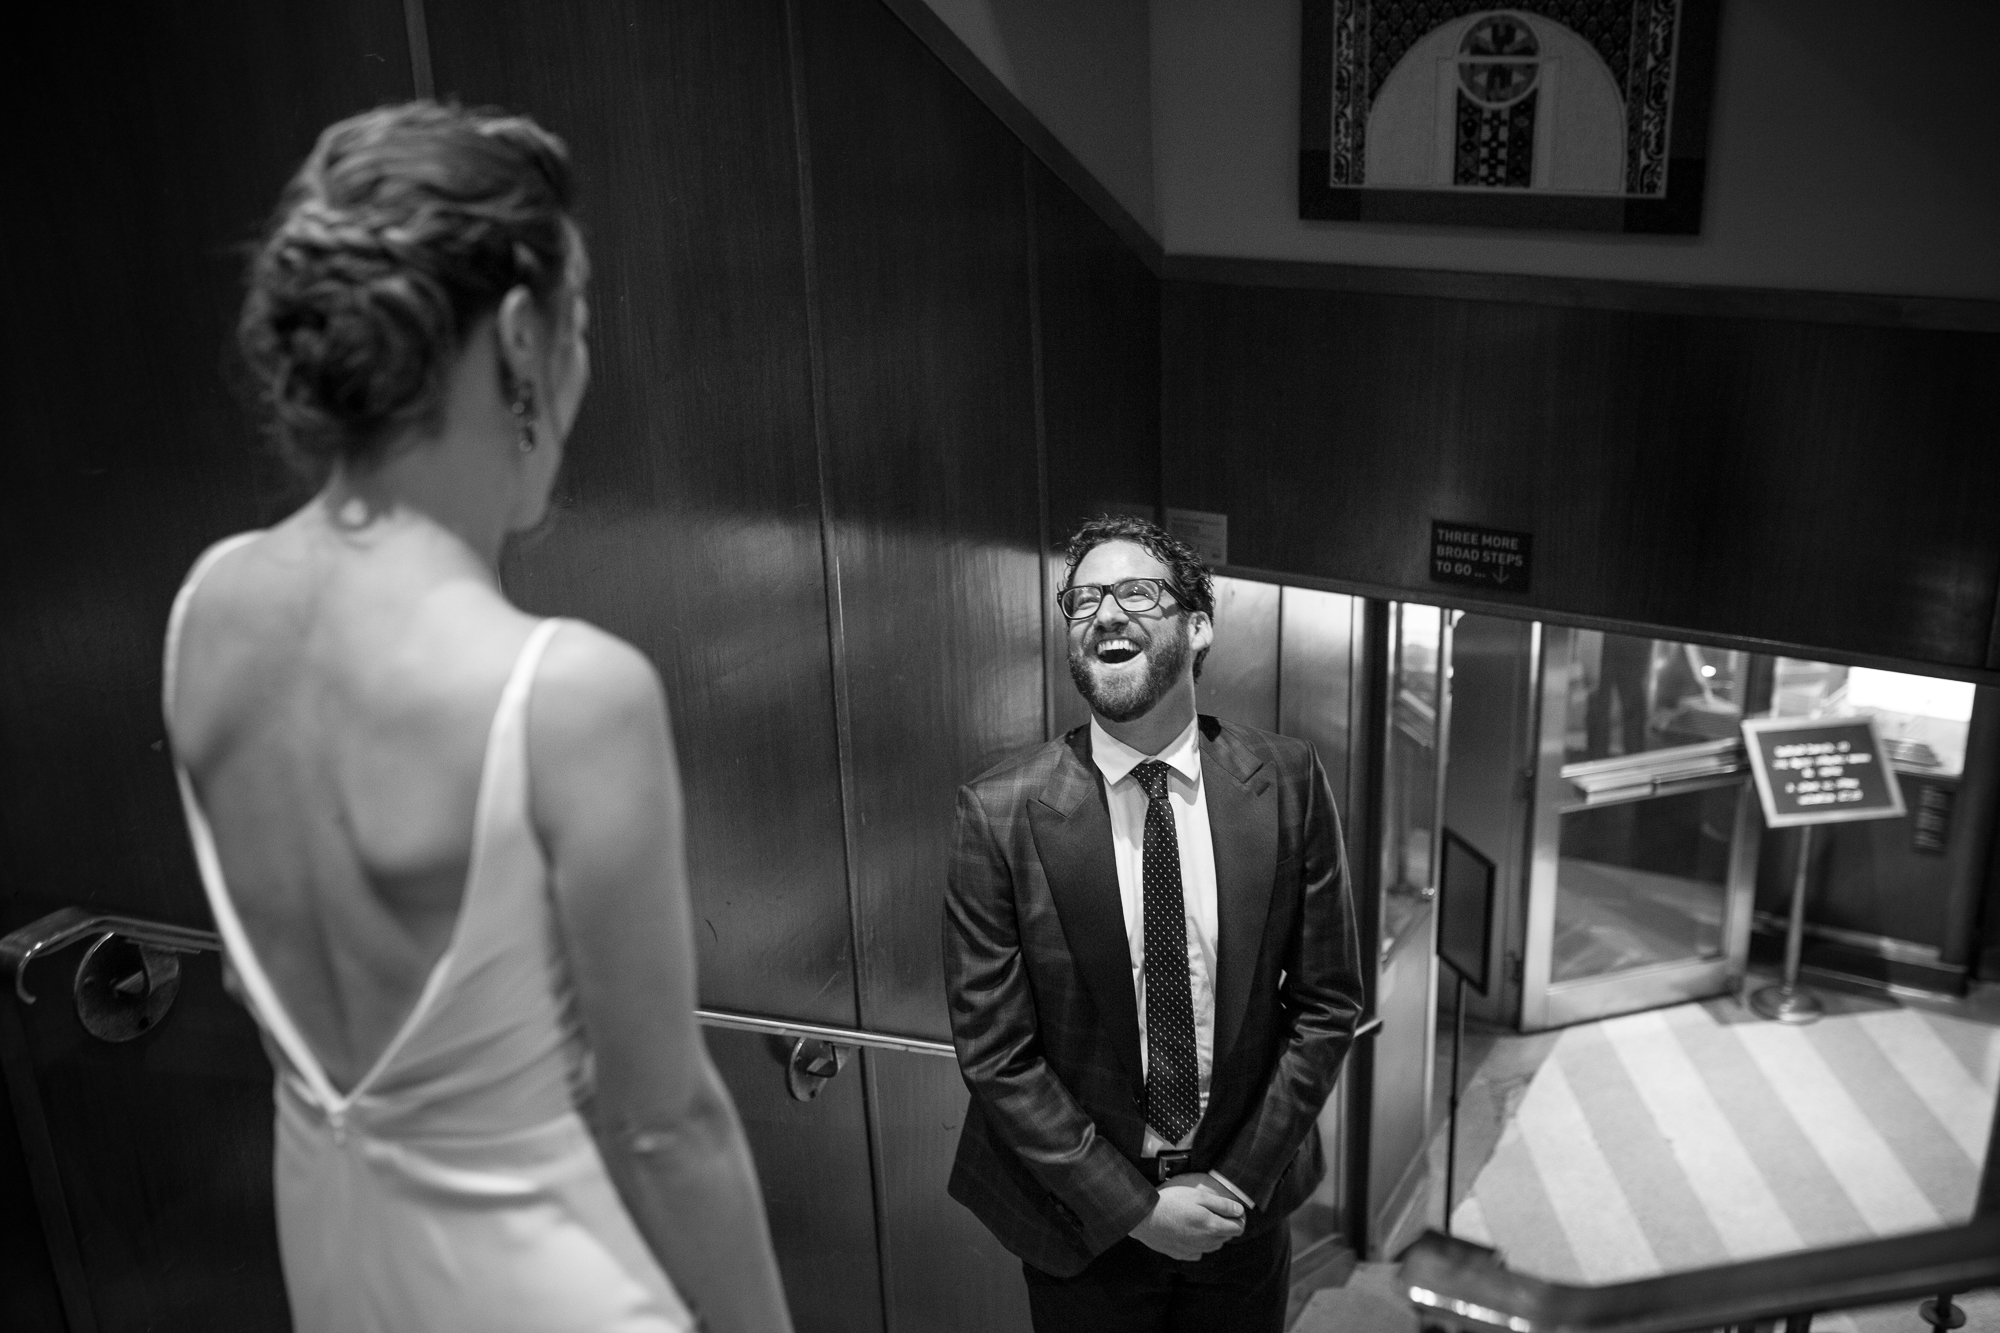 Leah-Chris-Ryan-Bolton-INLY-Events-Wedding-Toronto-Art-Gallery-045.jpg